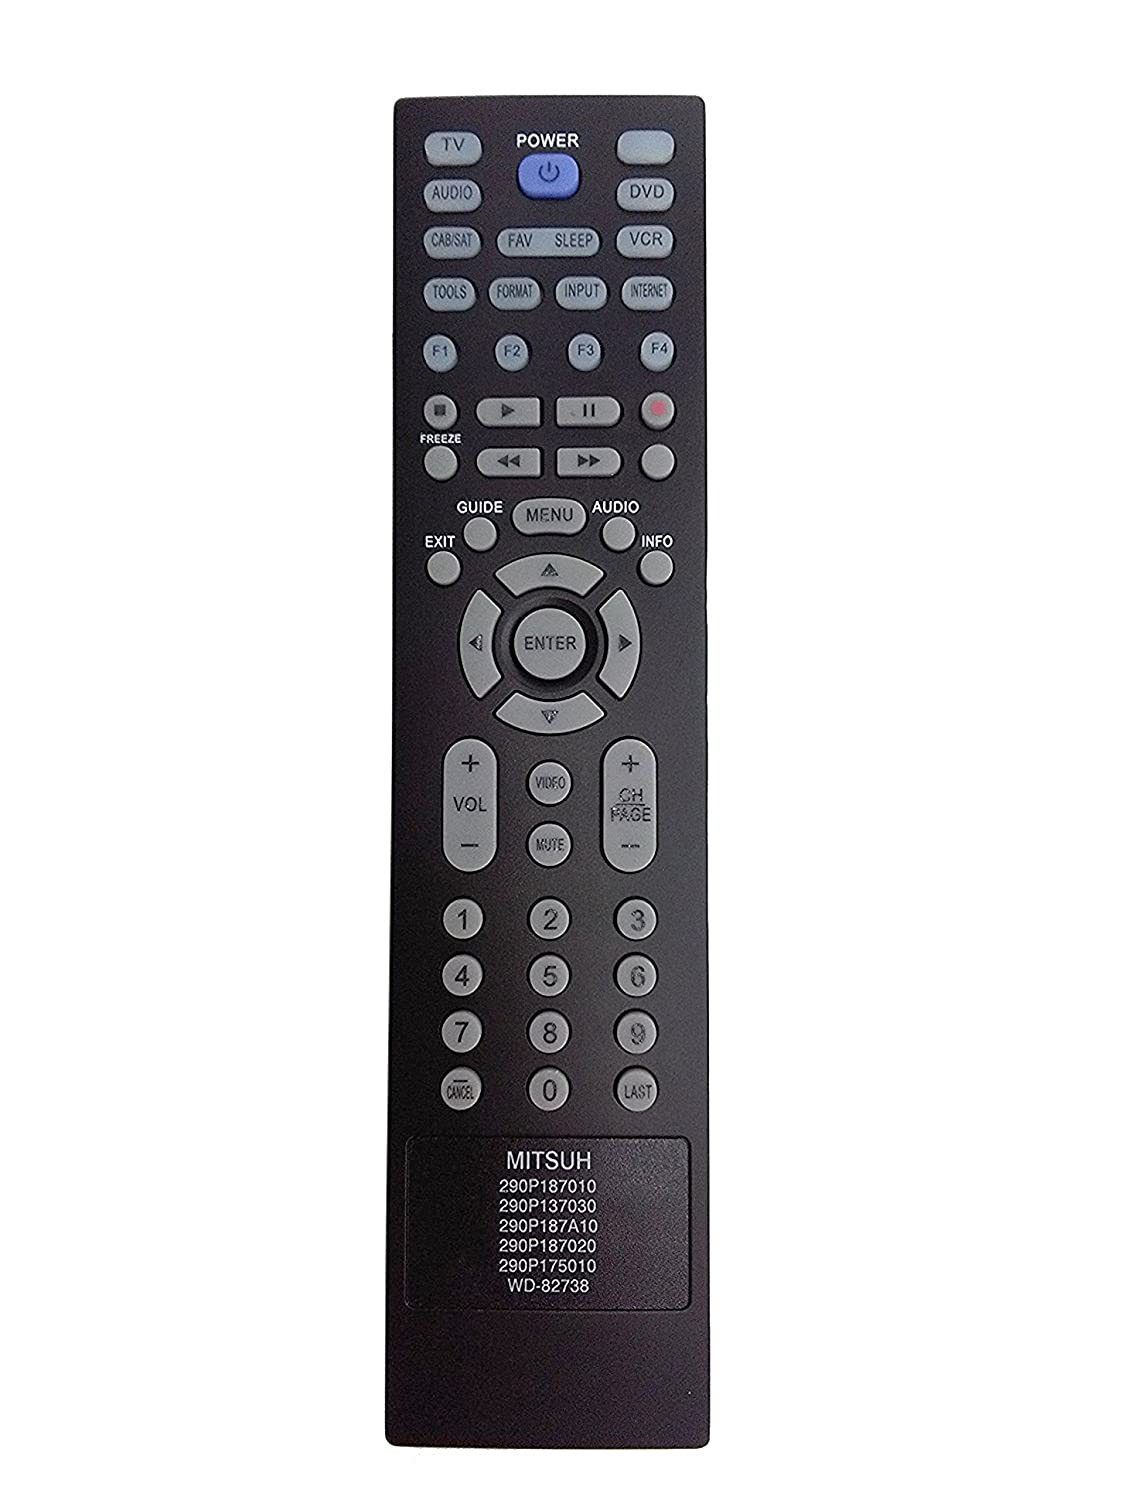 Amazon.com: New Replace Remote fit for MITSUBISHI 290P187010 290P137030  290P187A10 290P187020 290P175010 WD-82738 LT-40164 LT-46164 LT-46265 LT-55154  ...